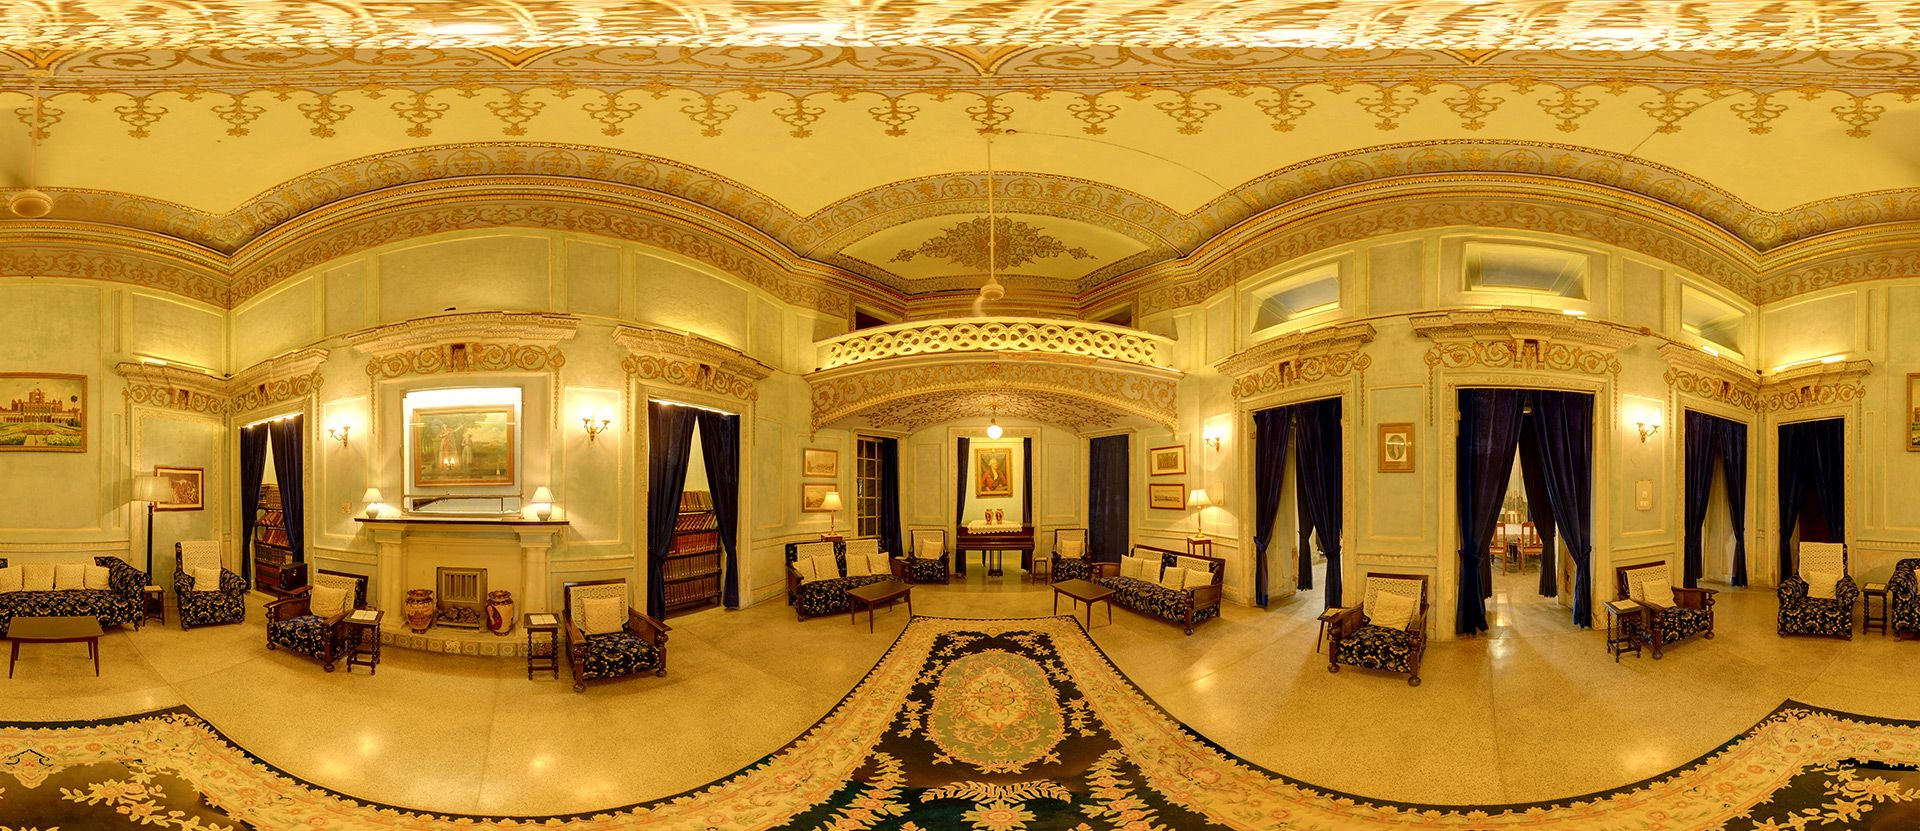 On Of The 360 Degree Panorama From La Martiniere College Lucknow